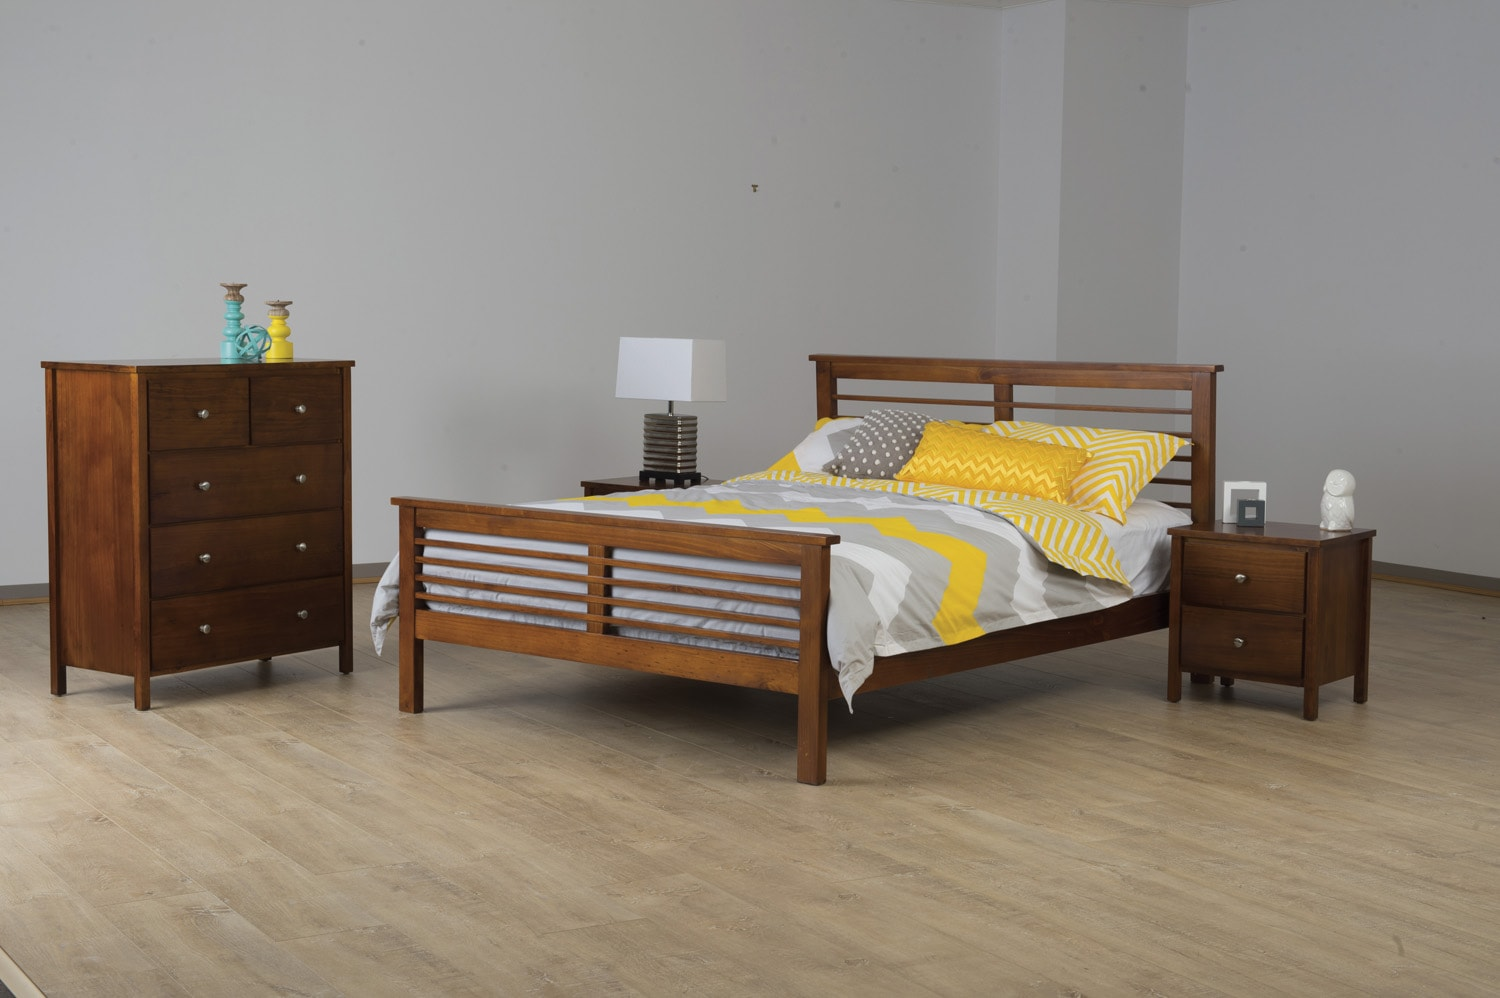 Cheap Bedroom Furniture Best Bedroom Colors With Black Furniture Headbo Find Every Shop In The